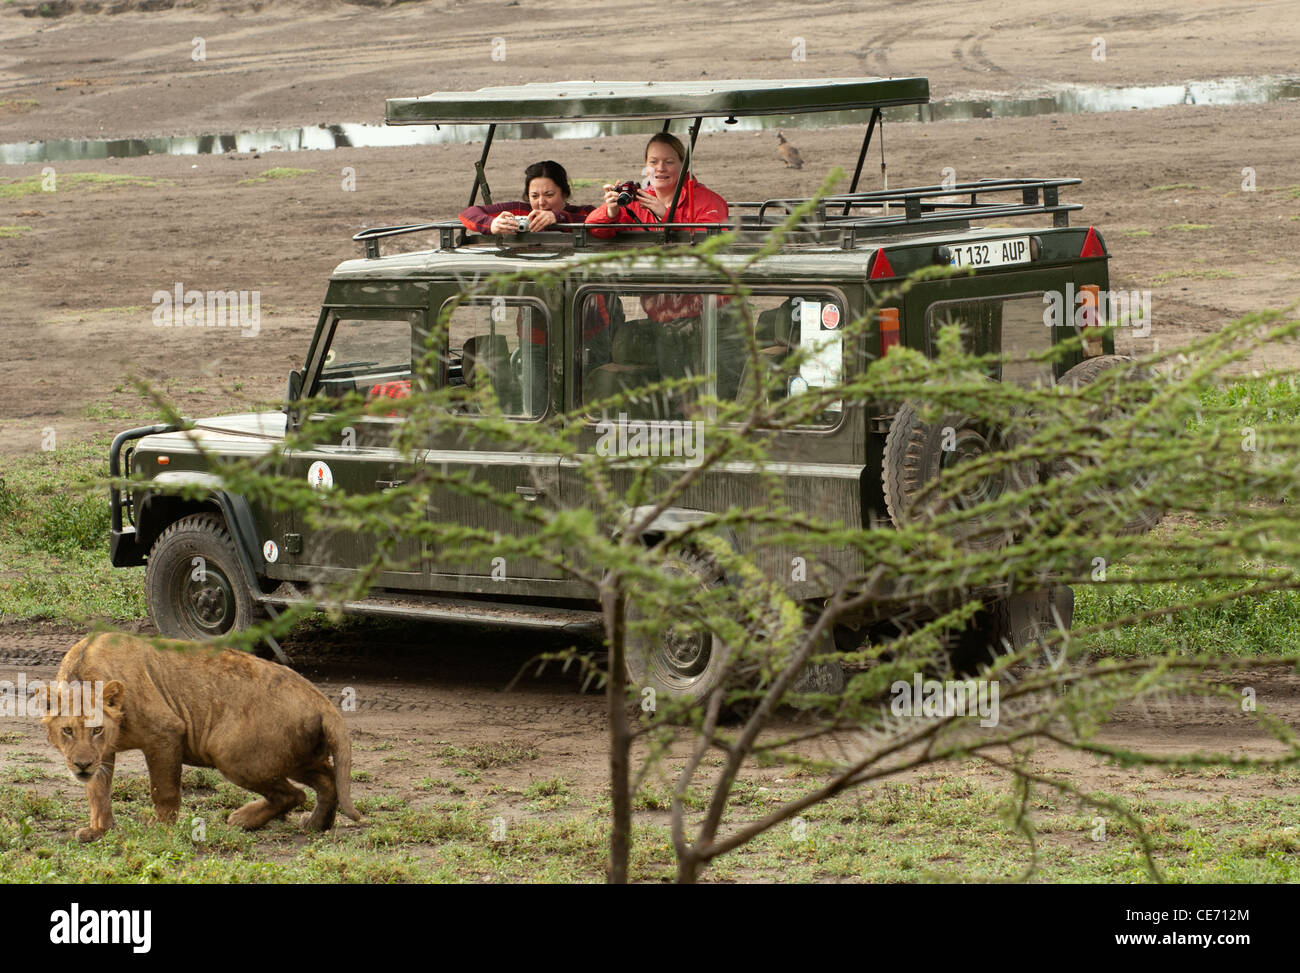 People looking out of the extended roof of Land Rover on safari looking at lion - Stock Image